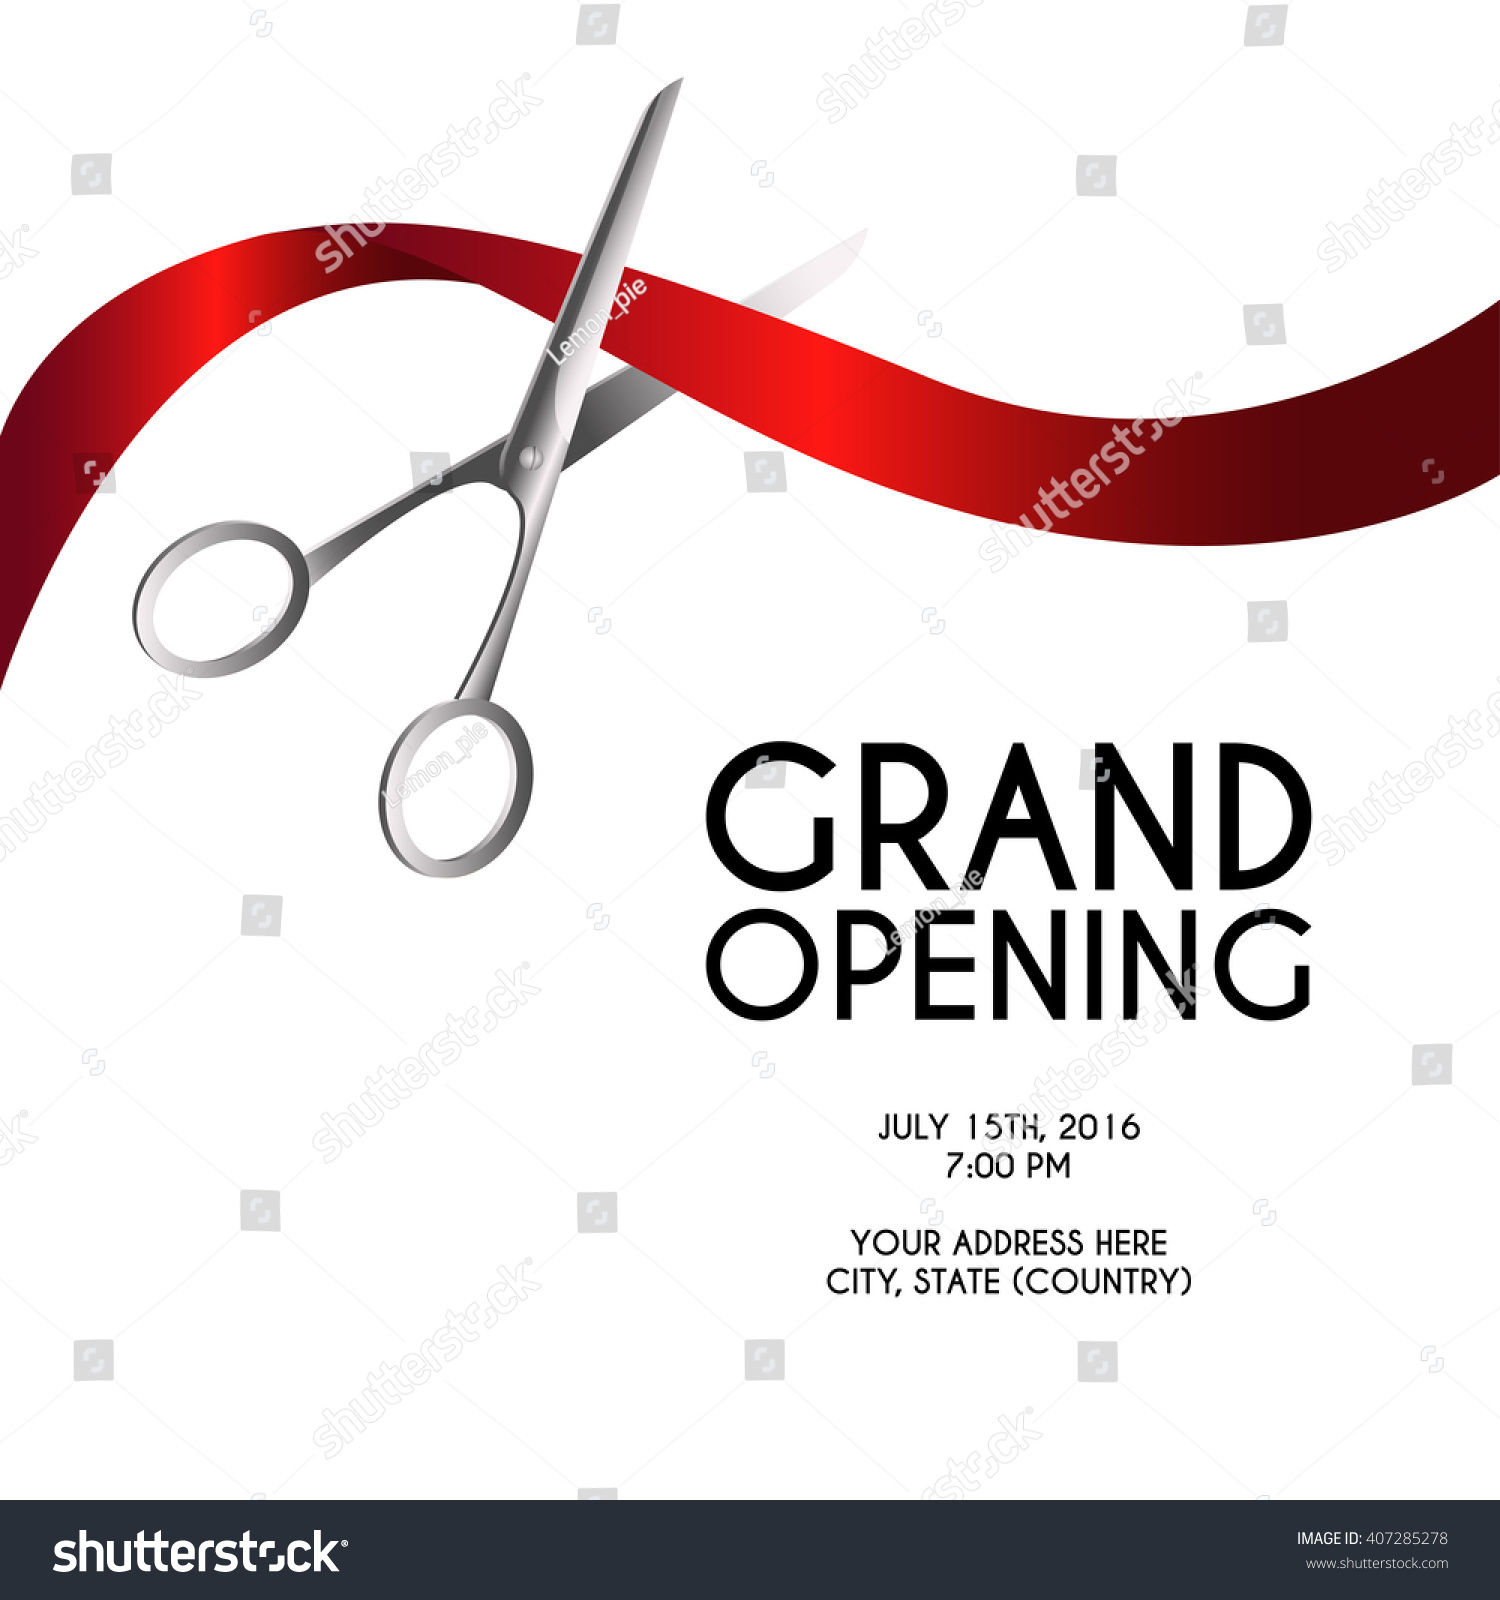 Grand Opening Poster Mockup Silver Scissors Stock Vector ...